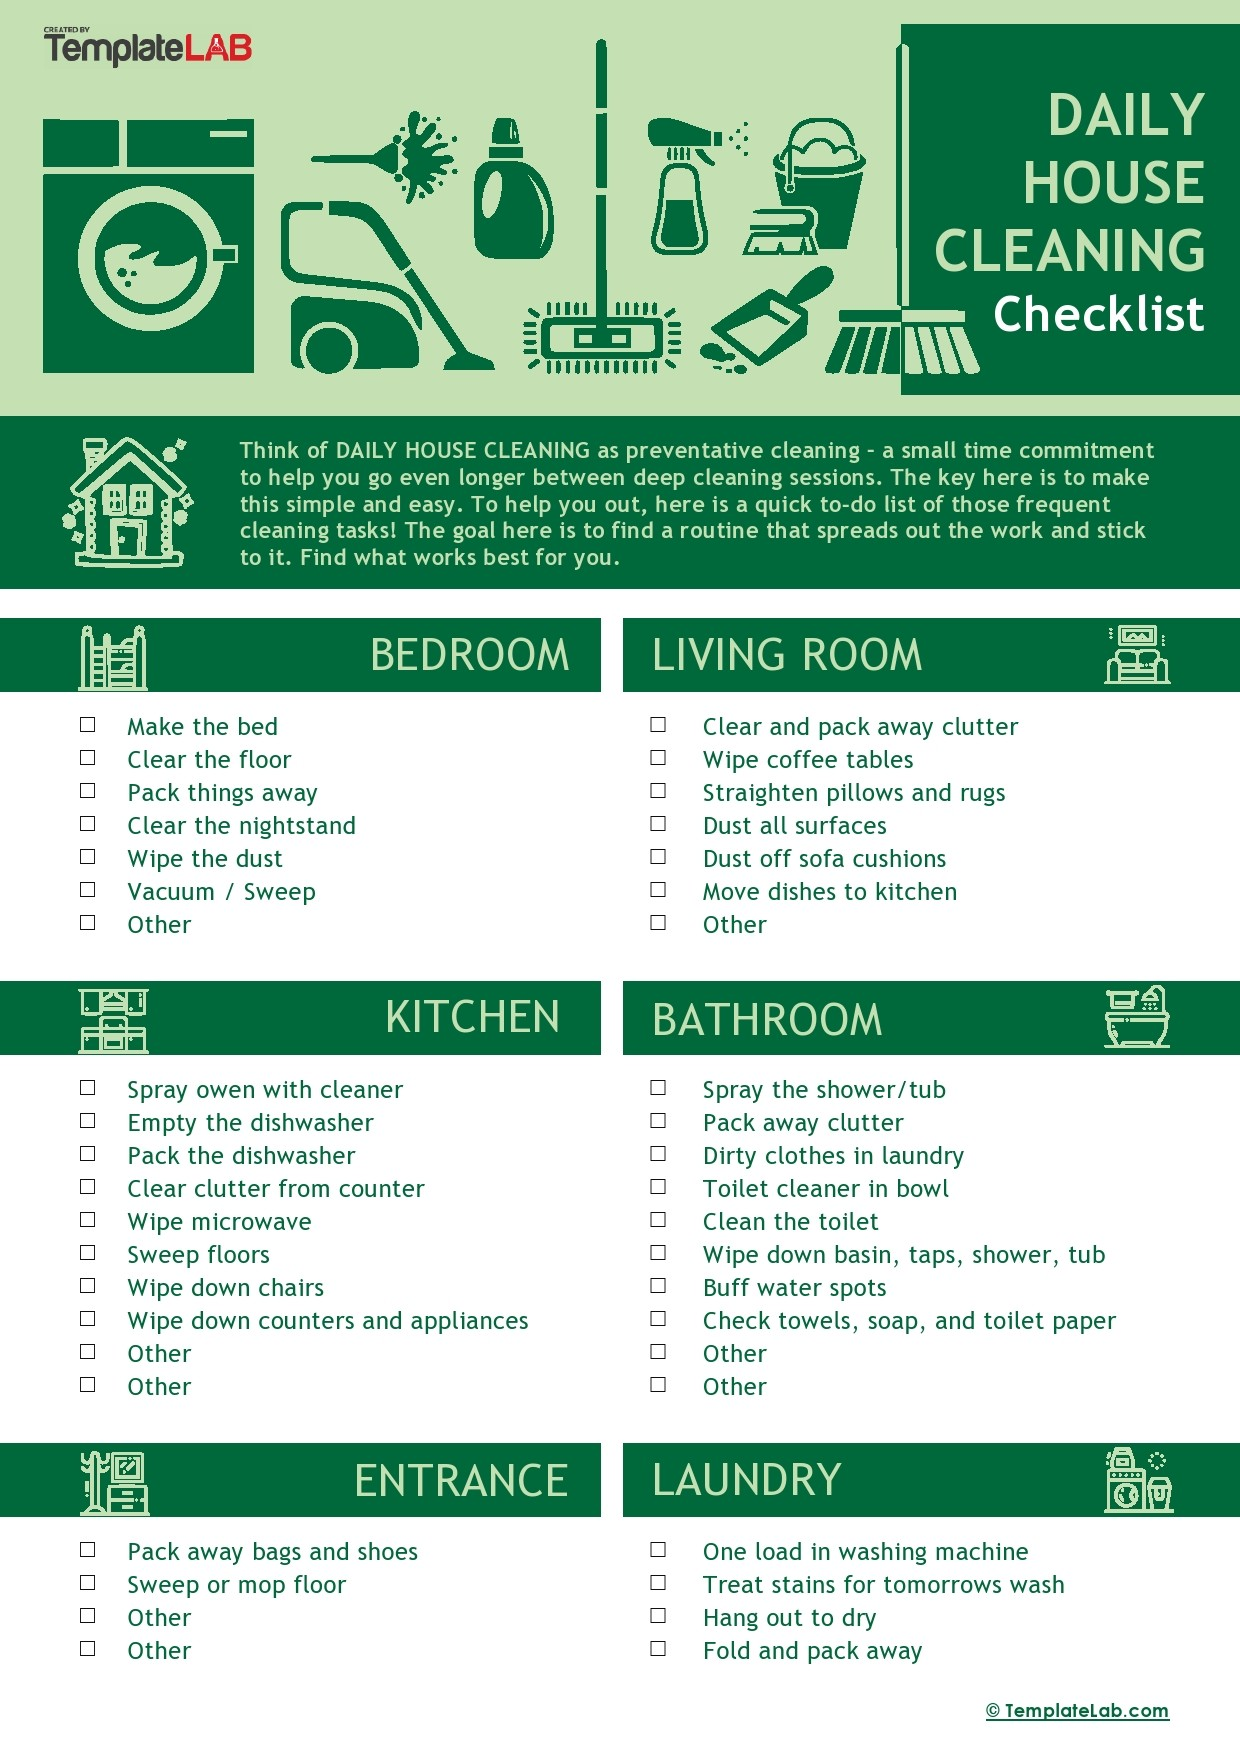 Free Daily House Cleaning Checklist Template - TemplateLab.com